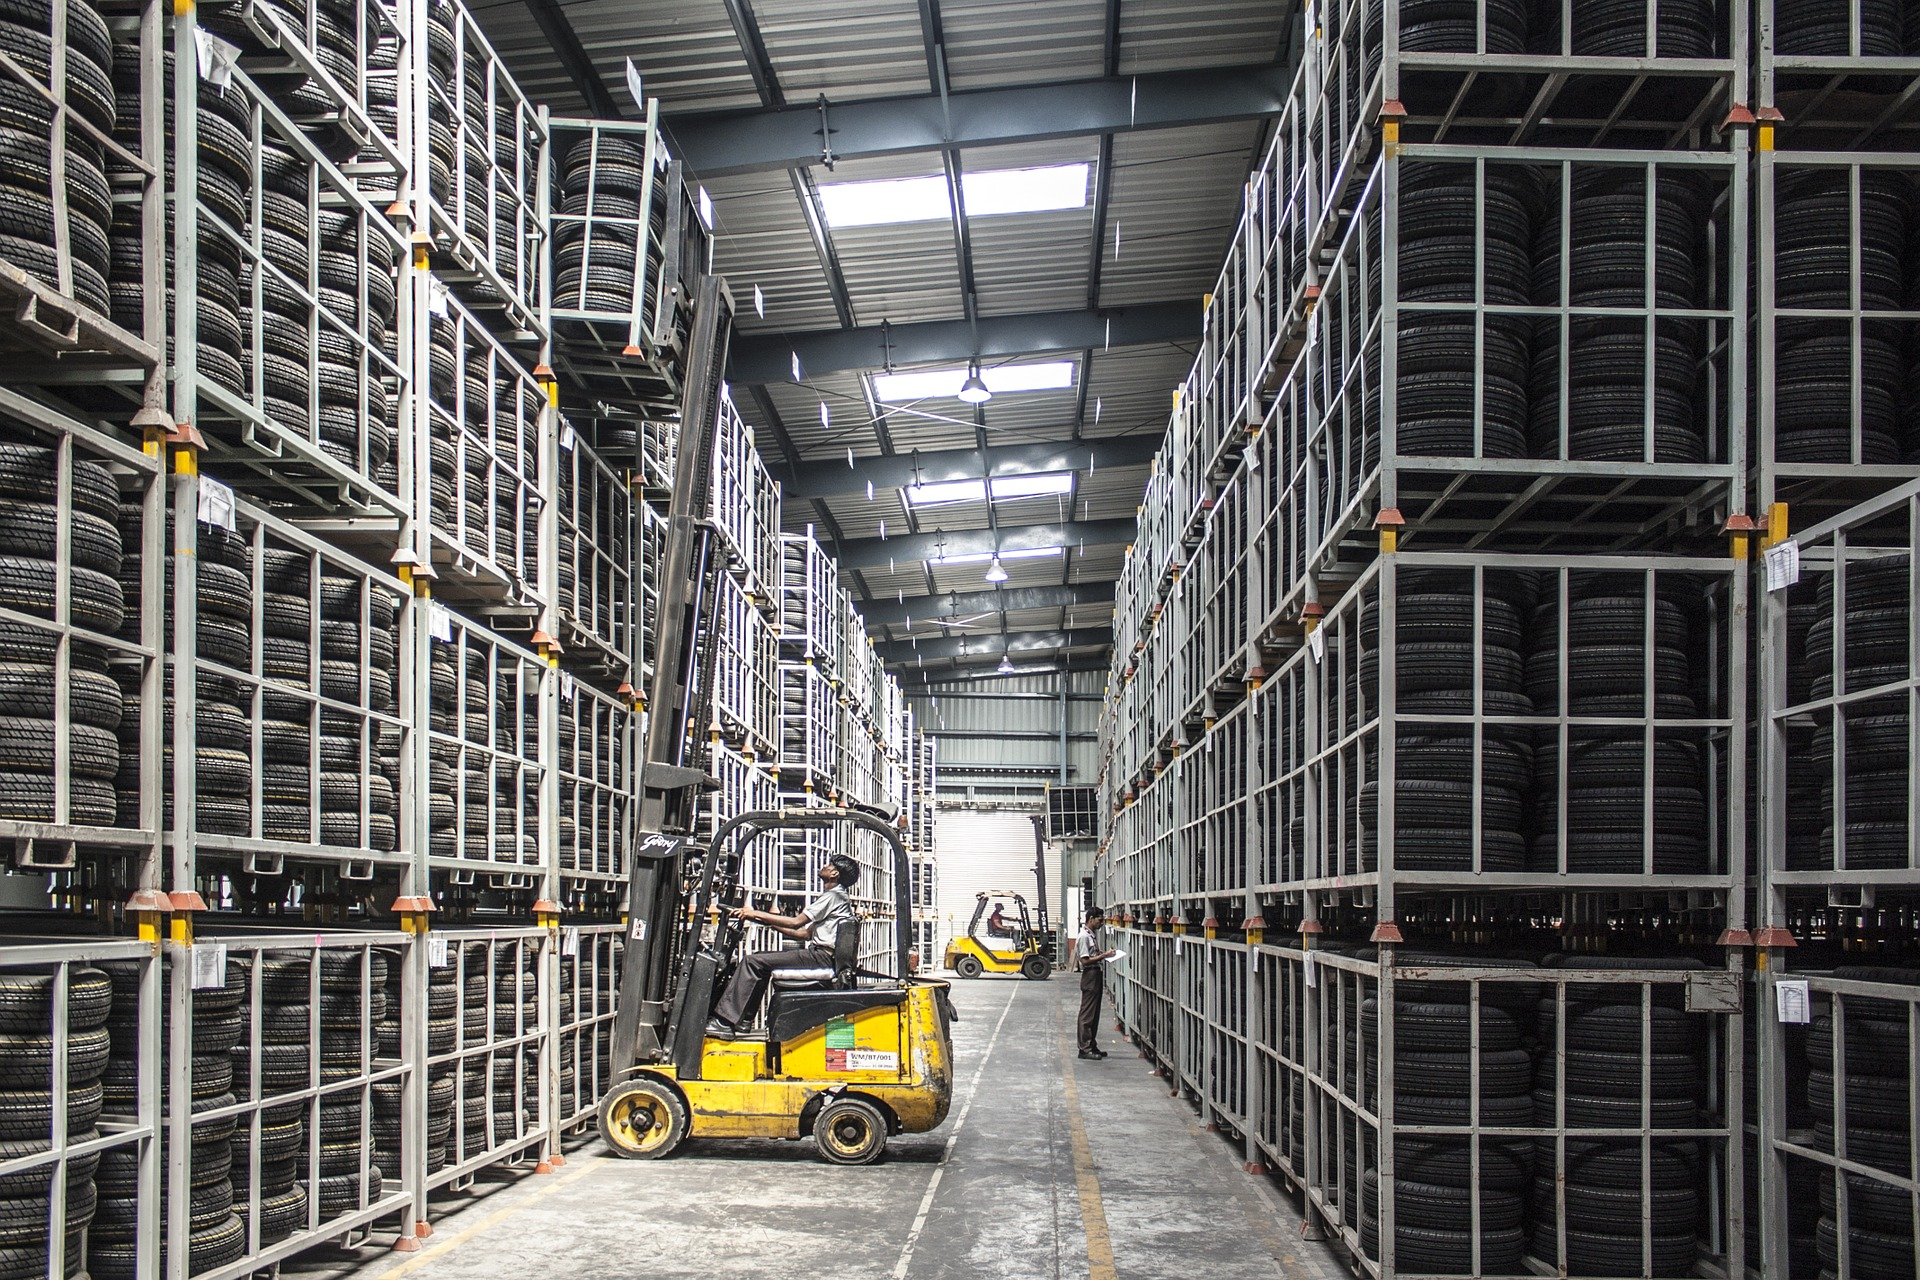 Inventory management for small businesses